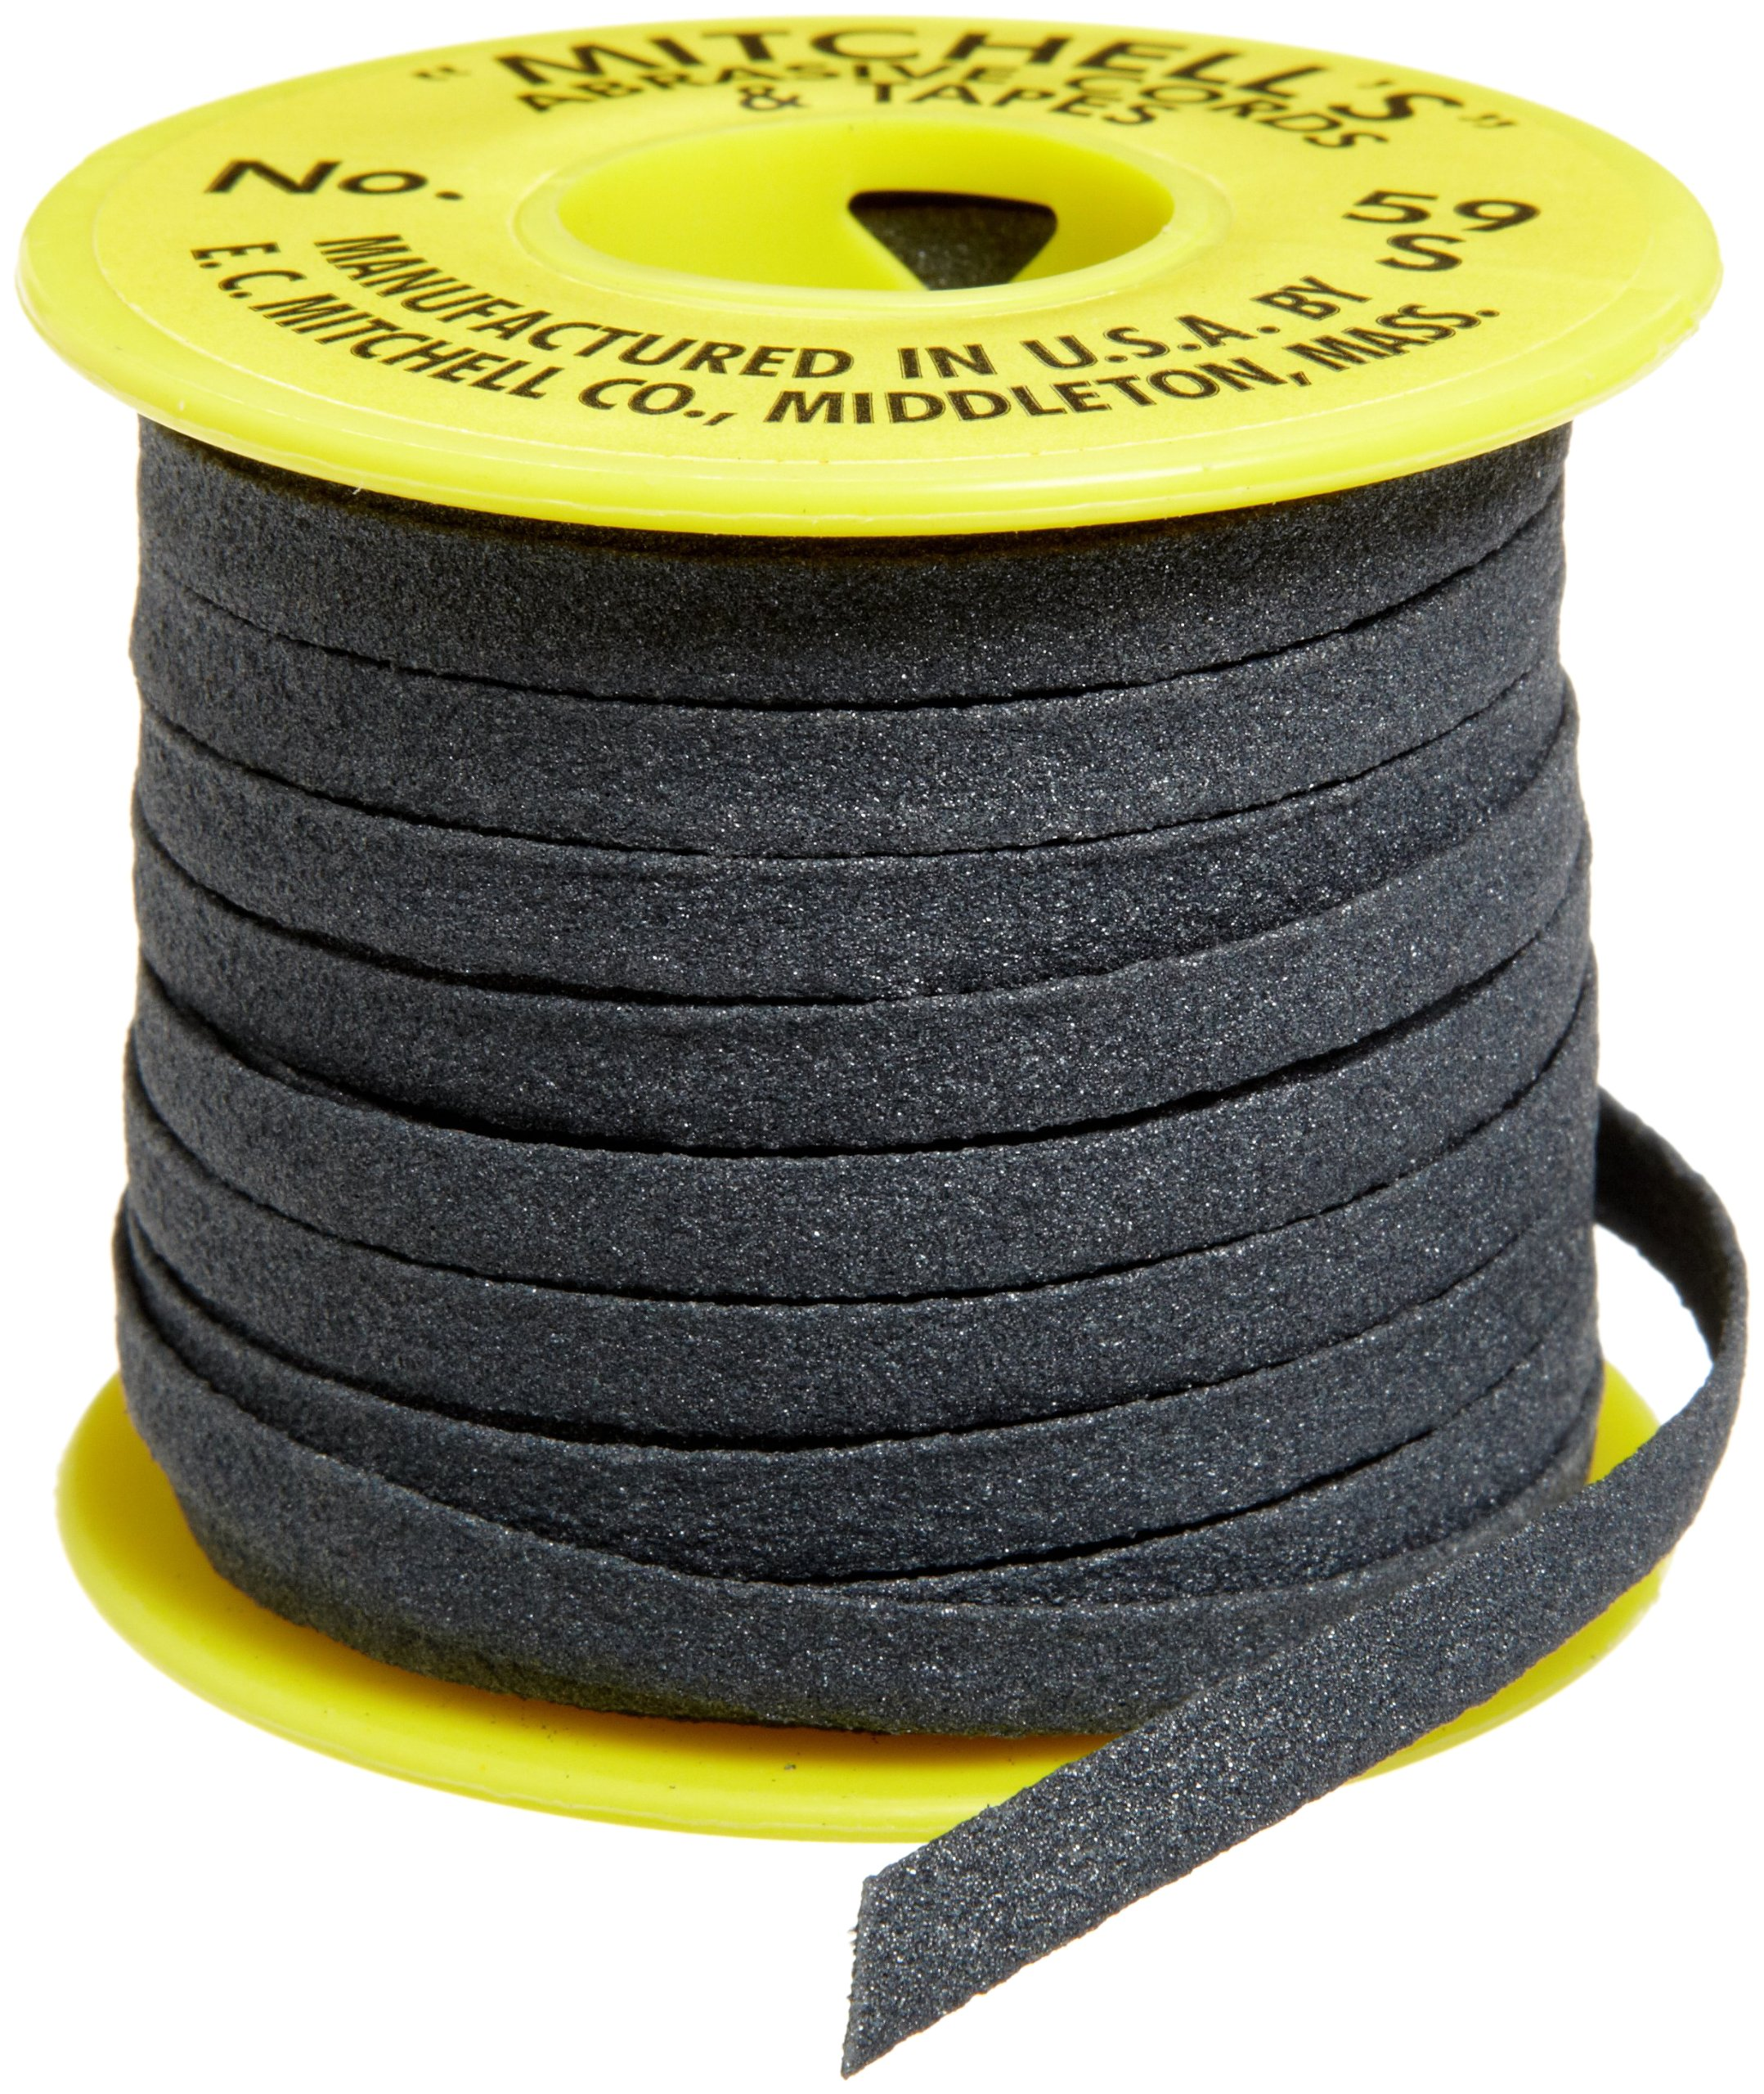 Mitchell Abrasives 59-S Flat Abrasive Tape, Silicon Carbide 150 Grit 1/4'' Wide x 25 Feet by Mitchell Abrasives